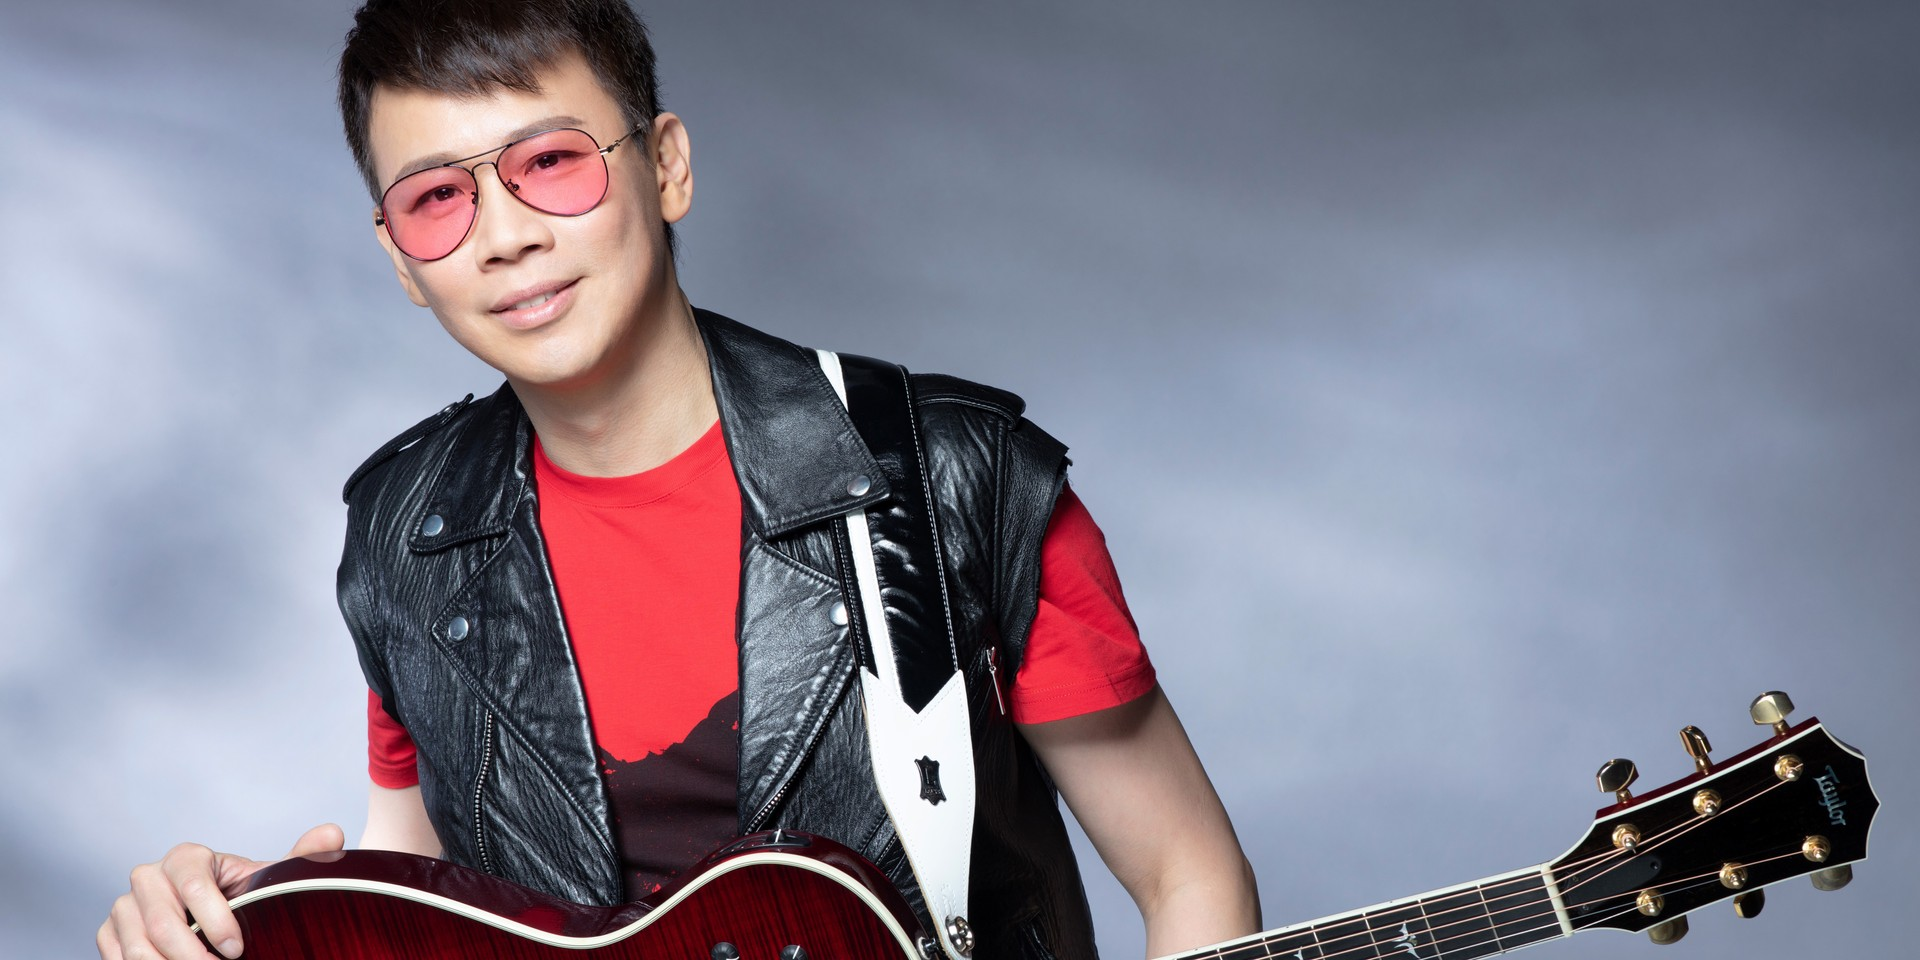 David Tao will be coming to Singapore for Huayi 2020